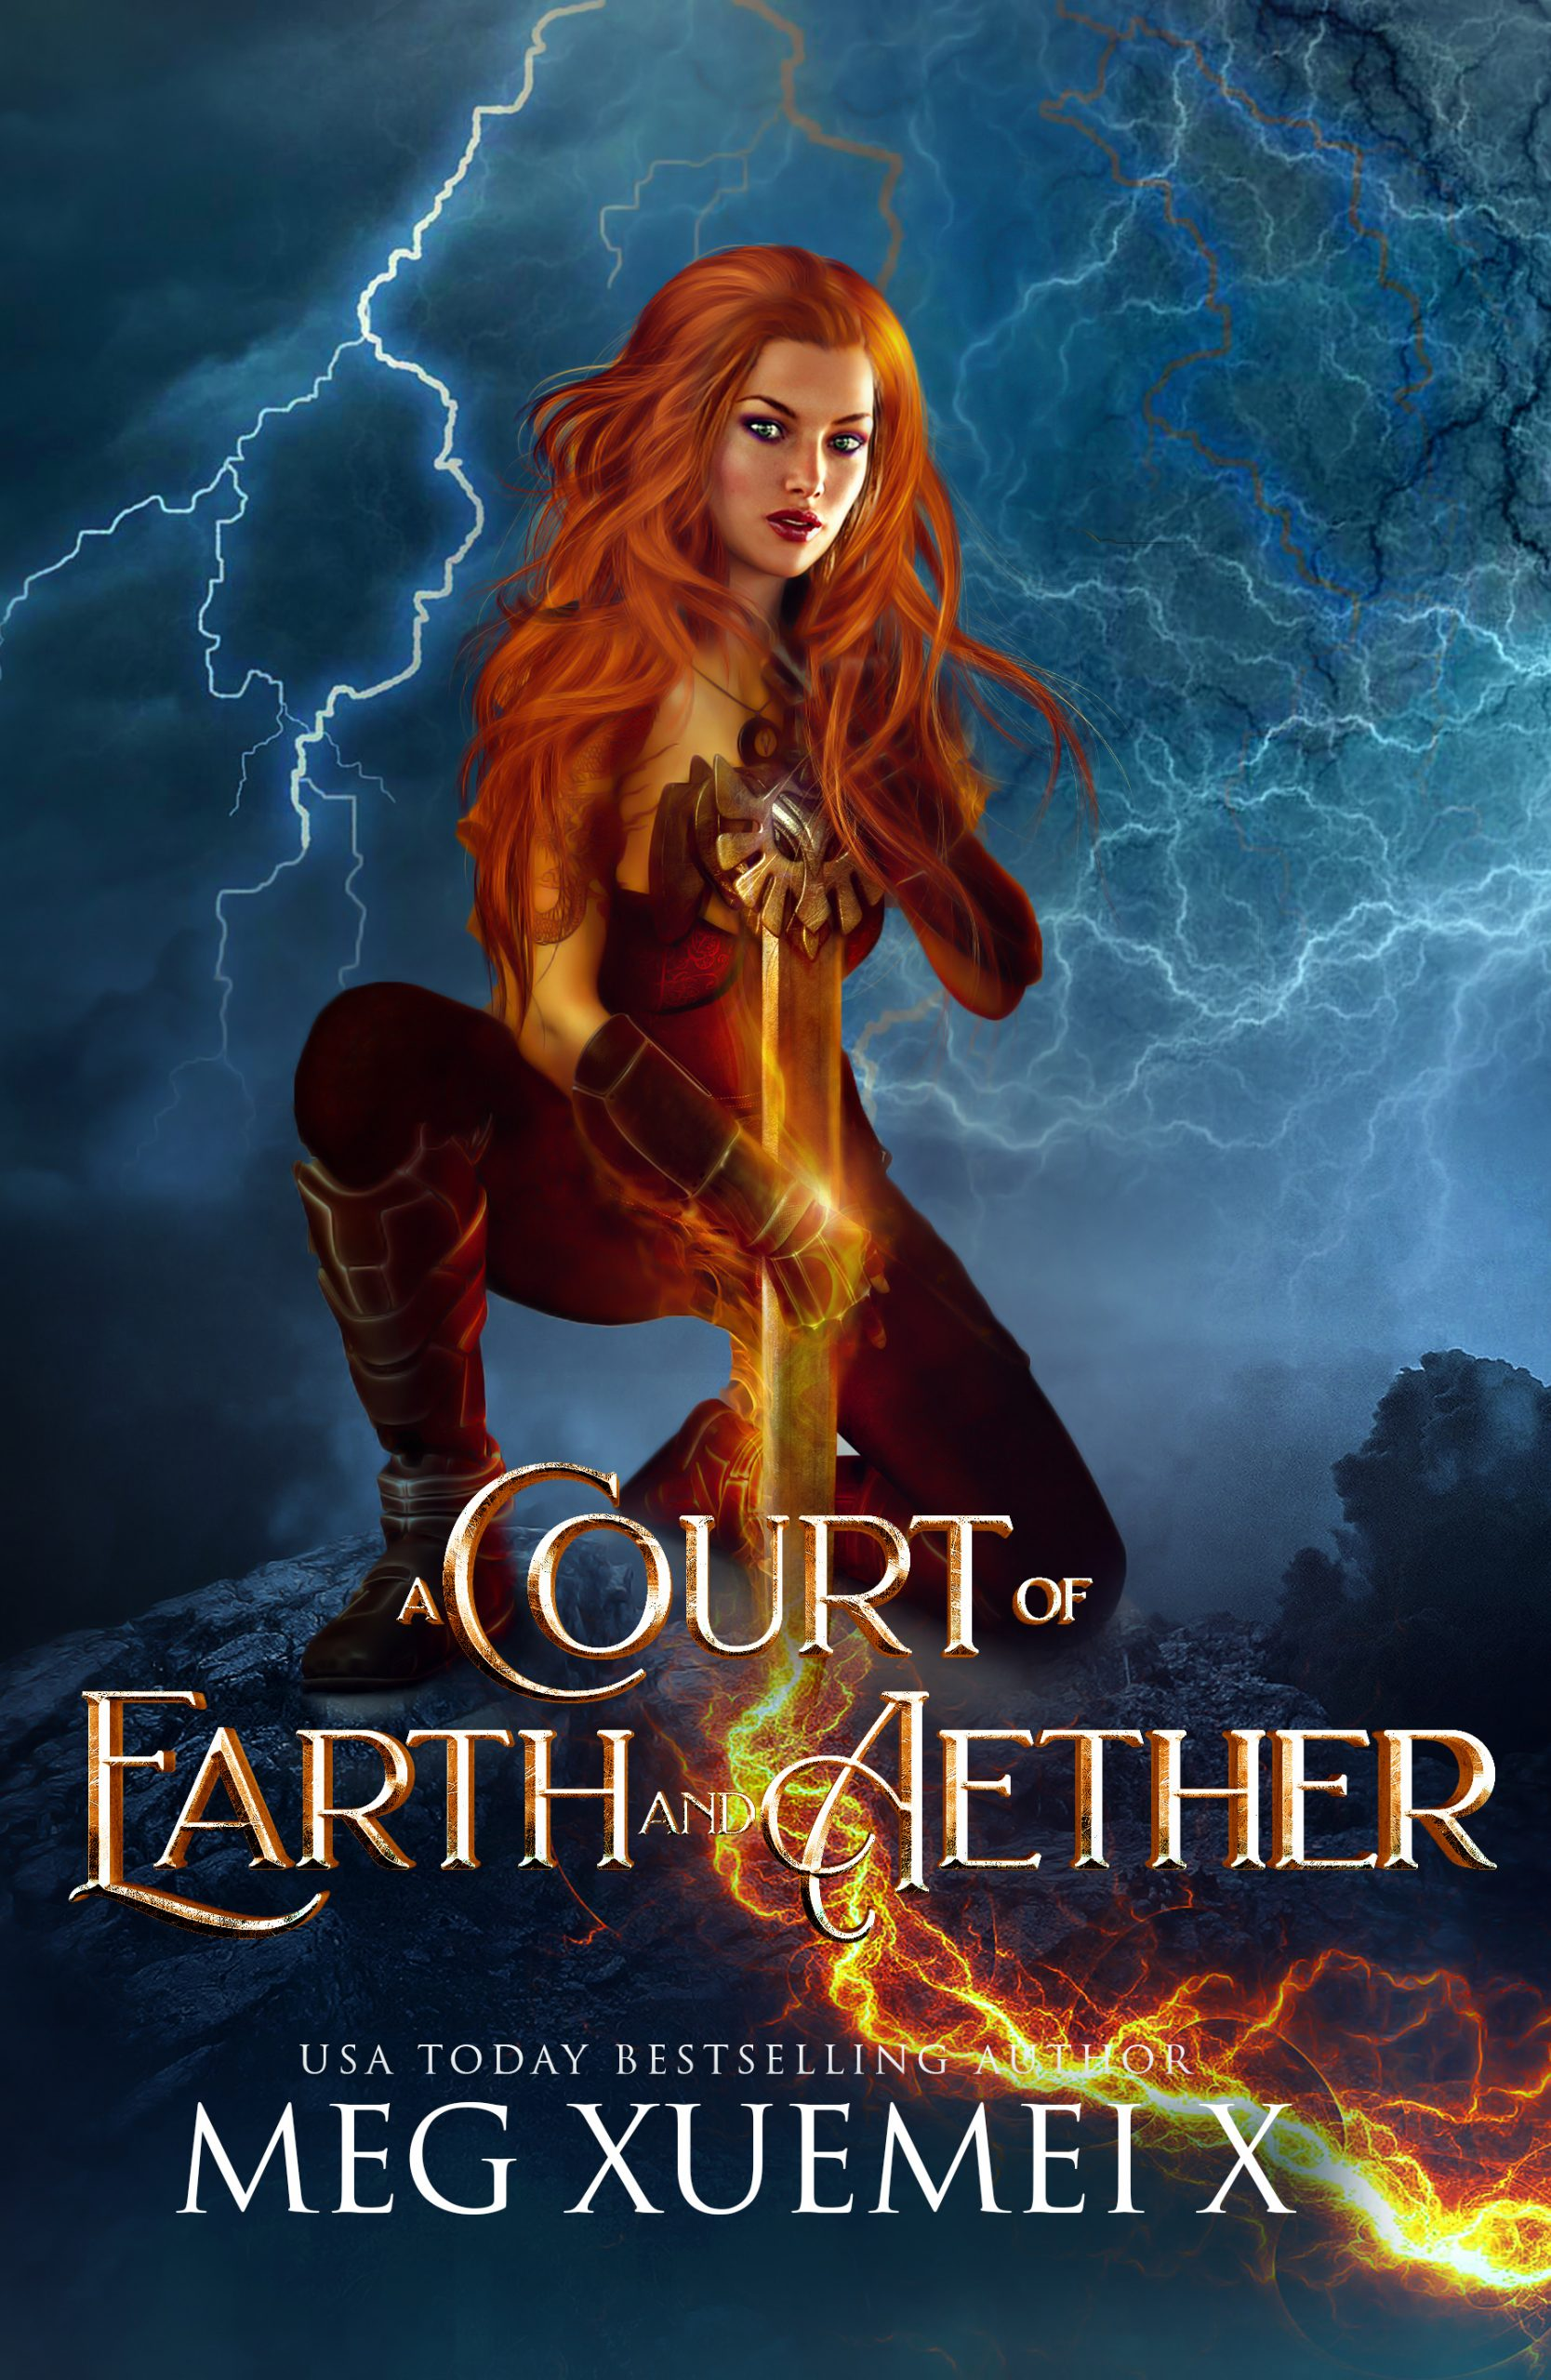 Court of Earth and Aether